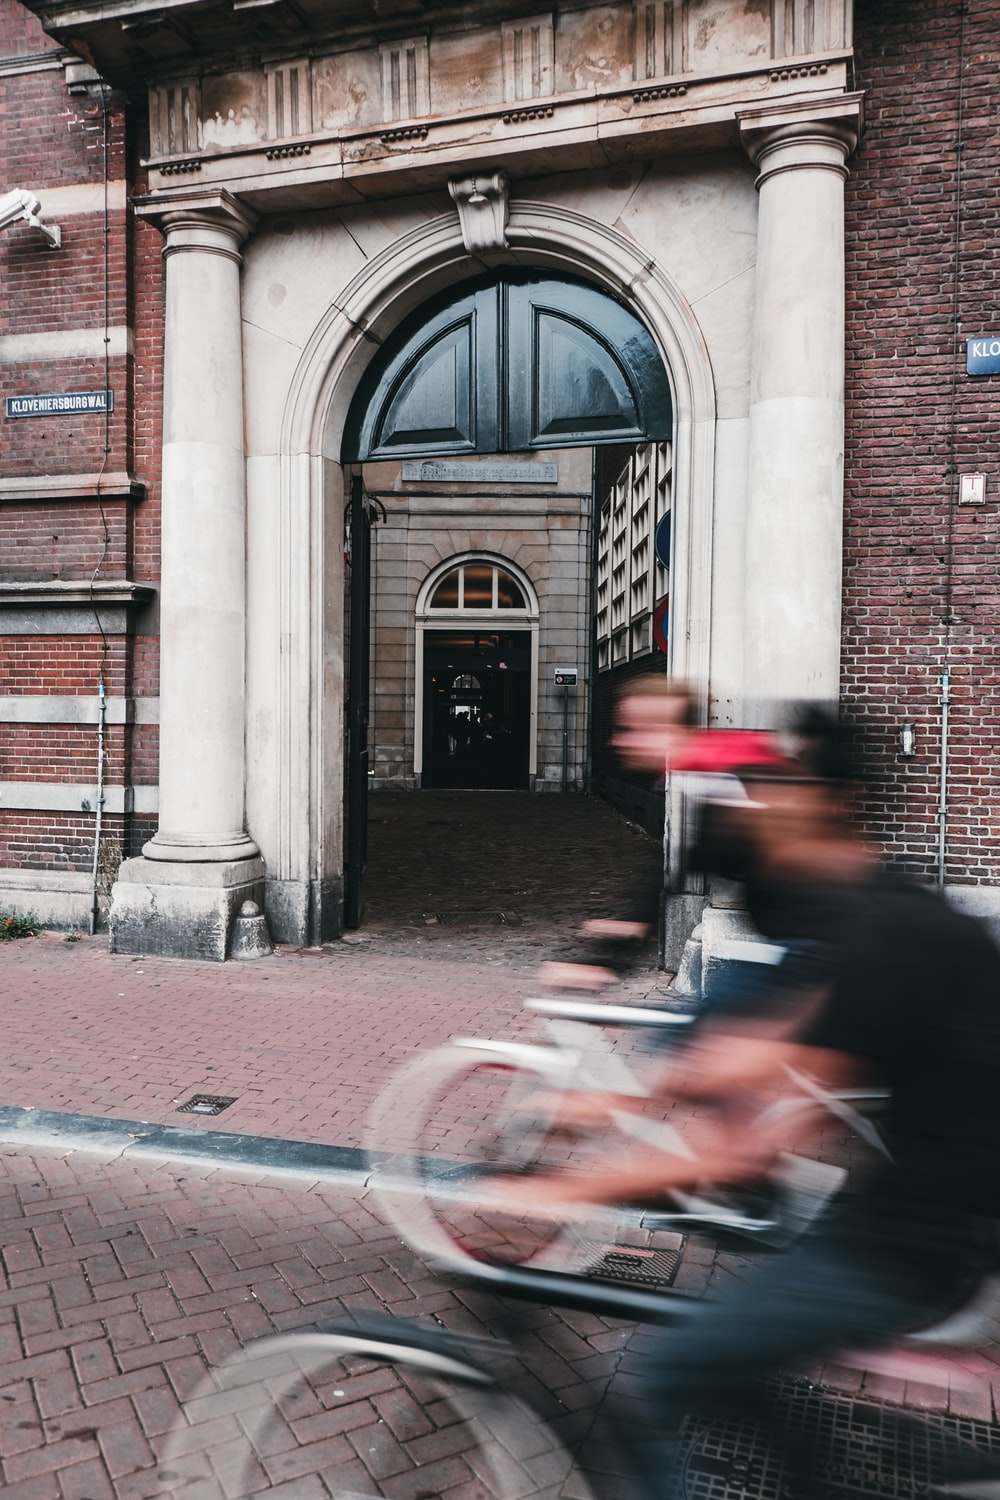 panning photography of two person riding bikes